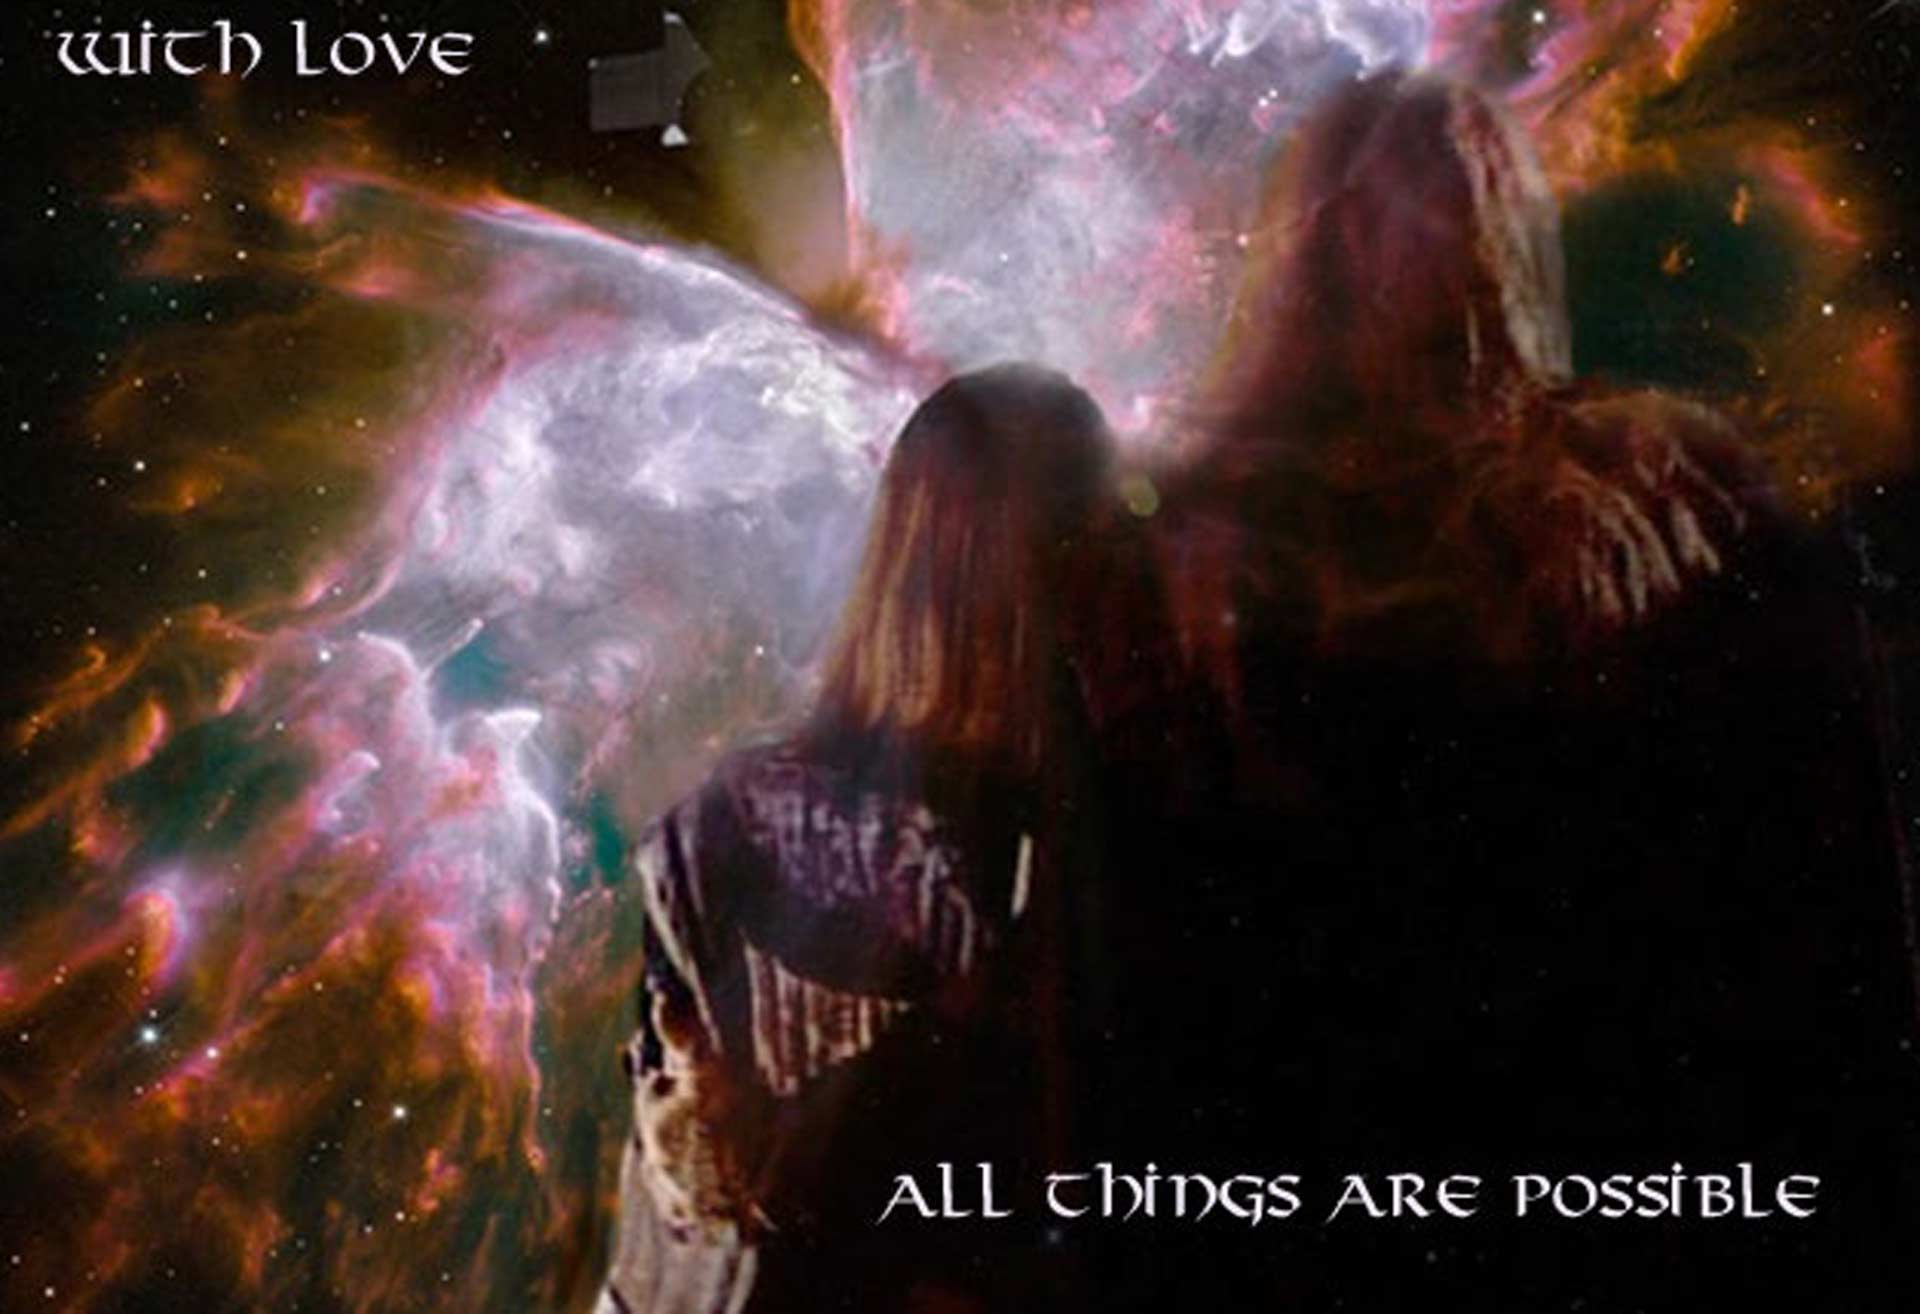 The Butterfly nebula, Catherine and Vincent, his arm around her waist, looking toward the stars. Text reads: With love, all things are possible